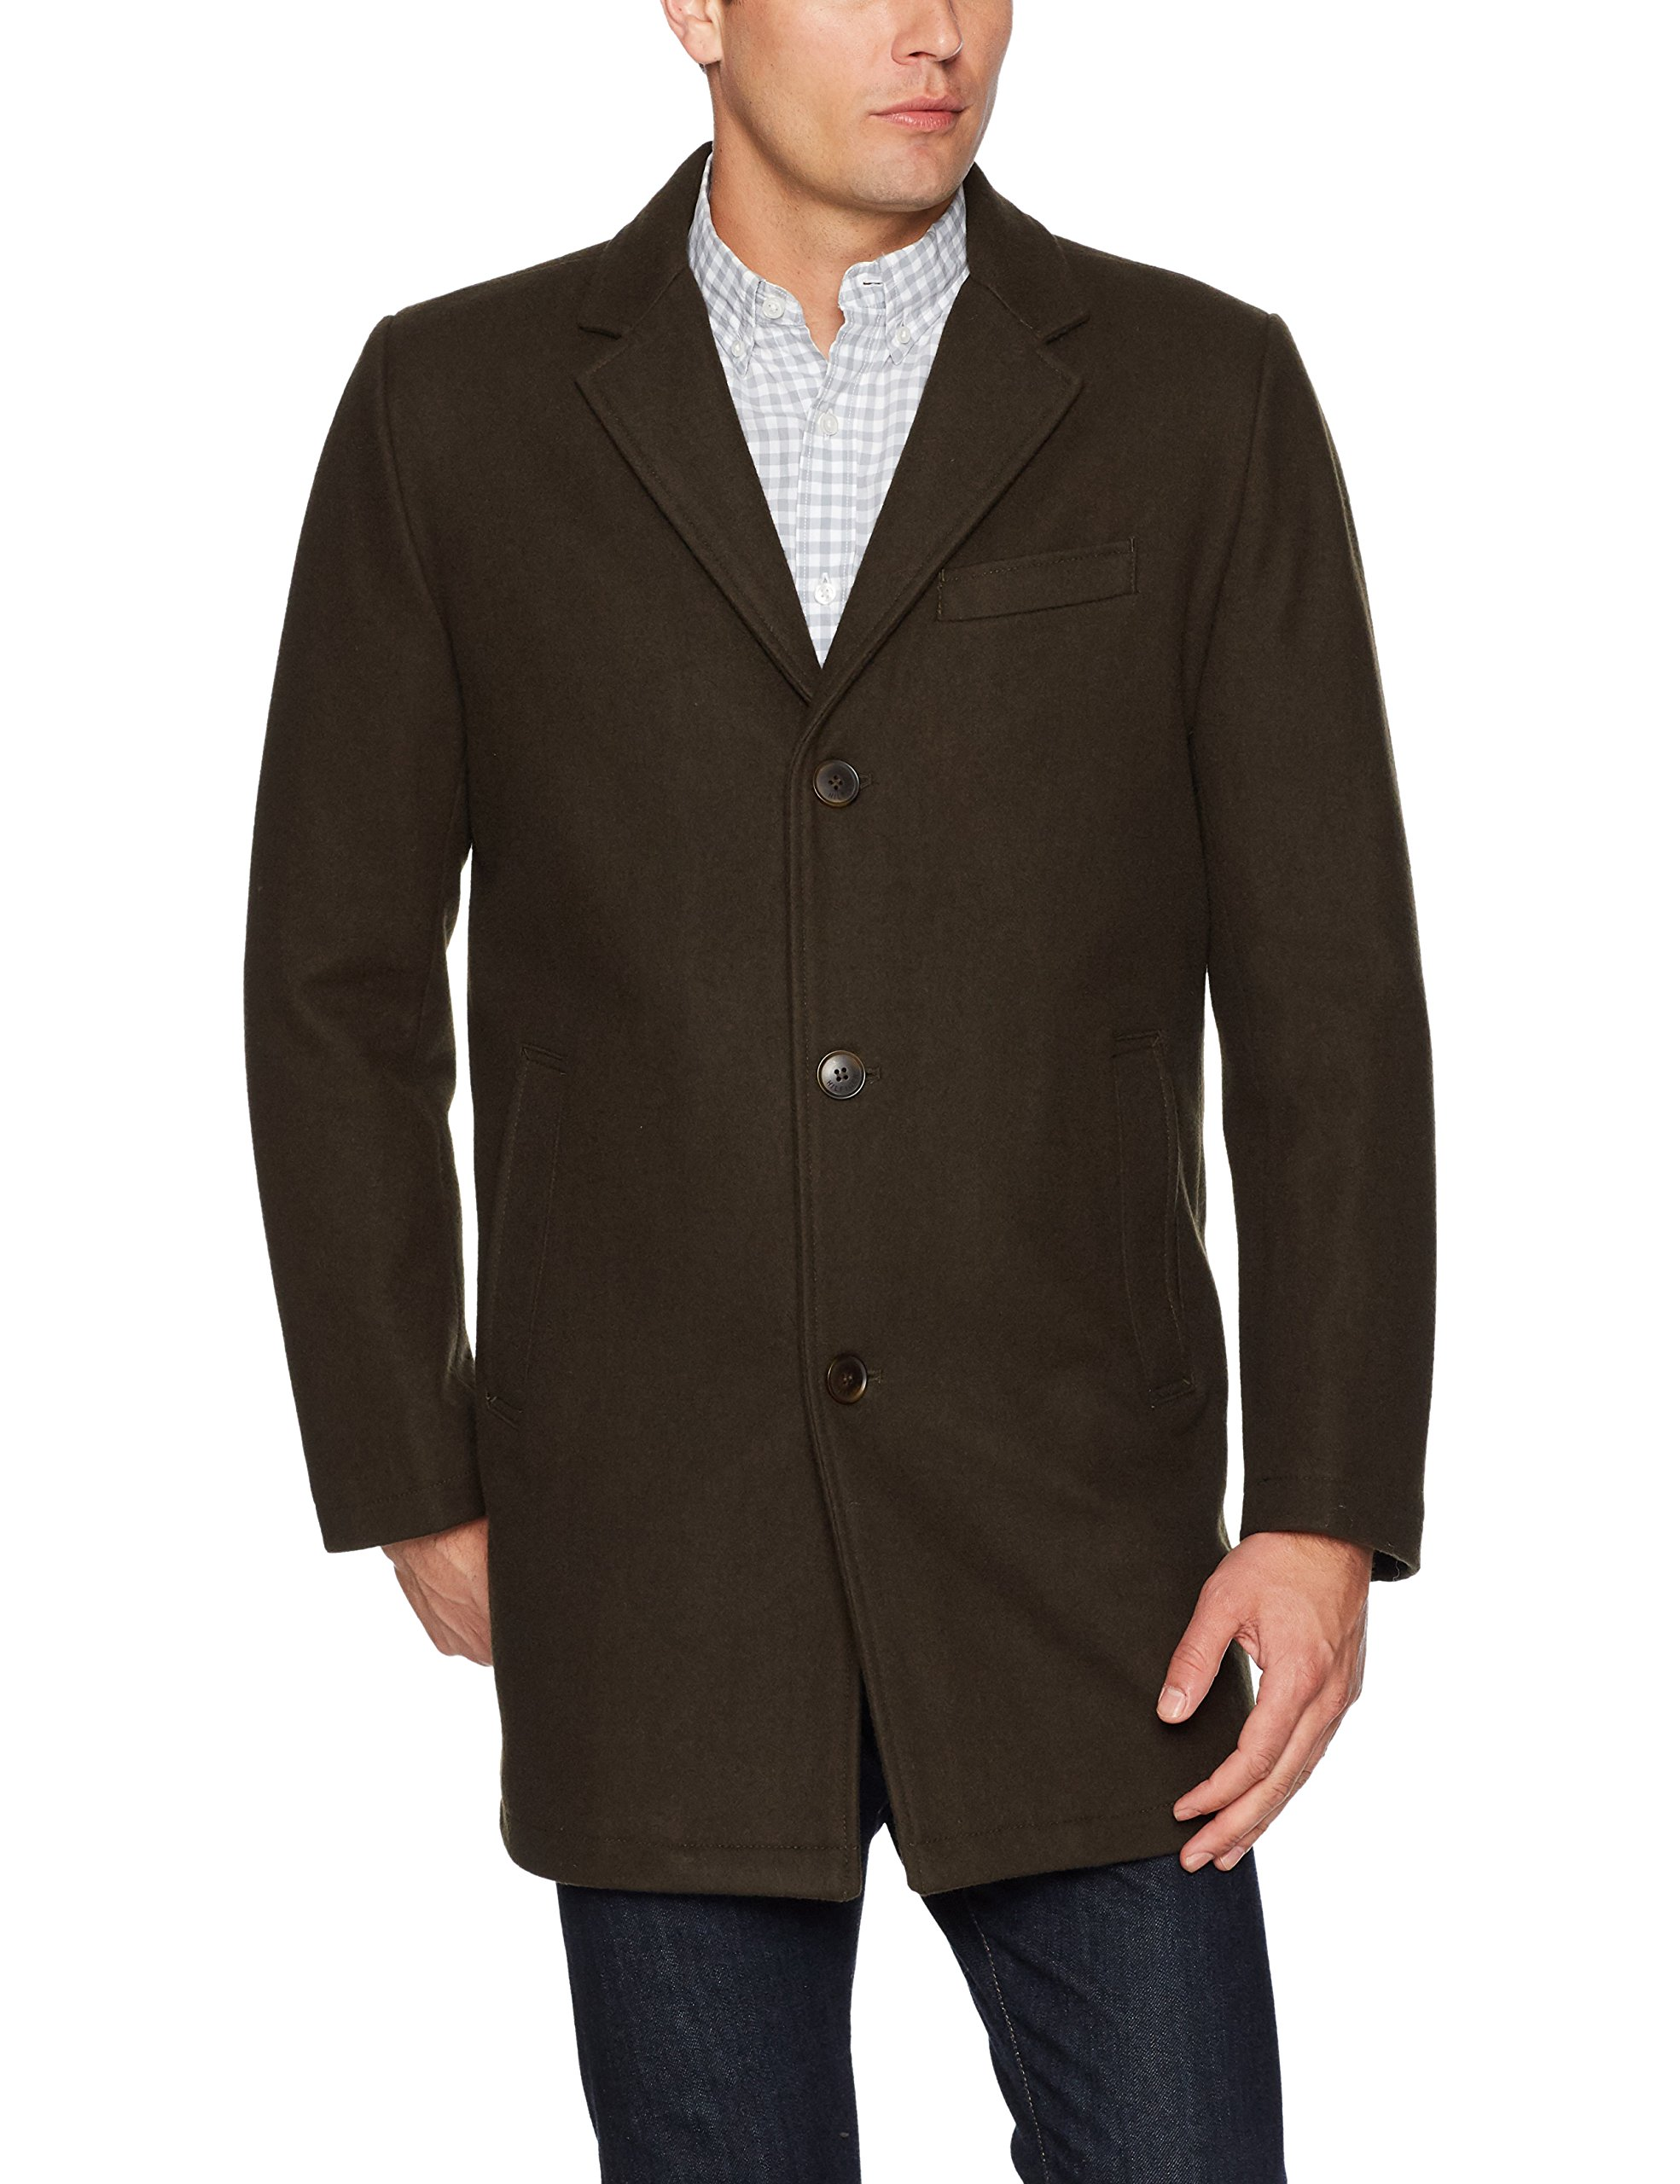 Tommy Hilfiger Men's Wool Tailored Top Coat, Olive, Small